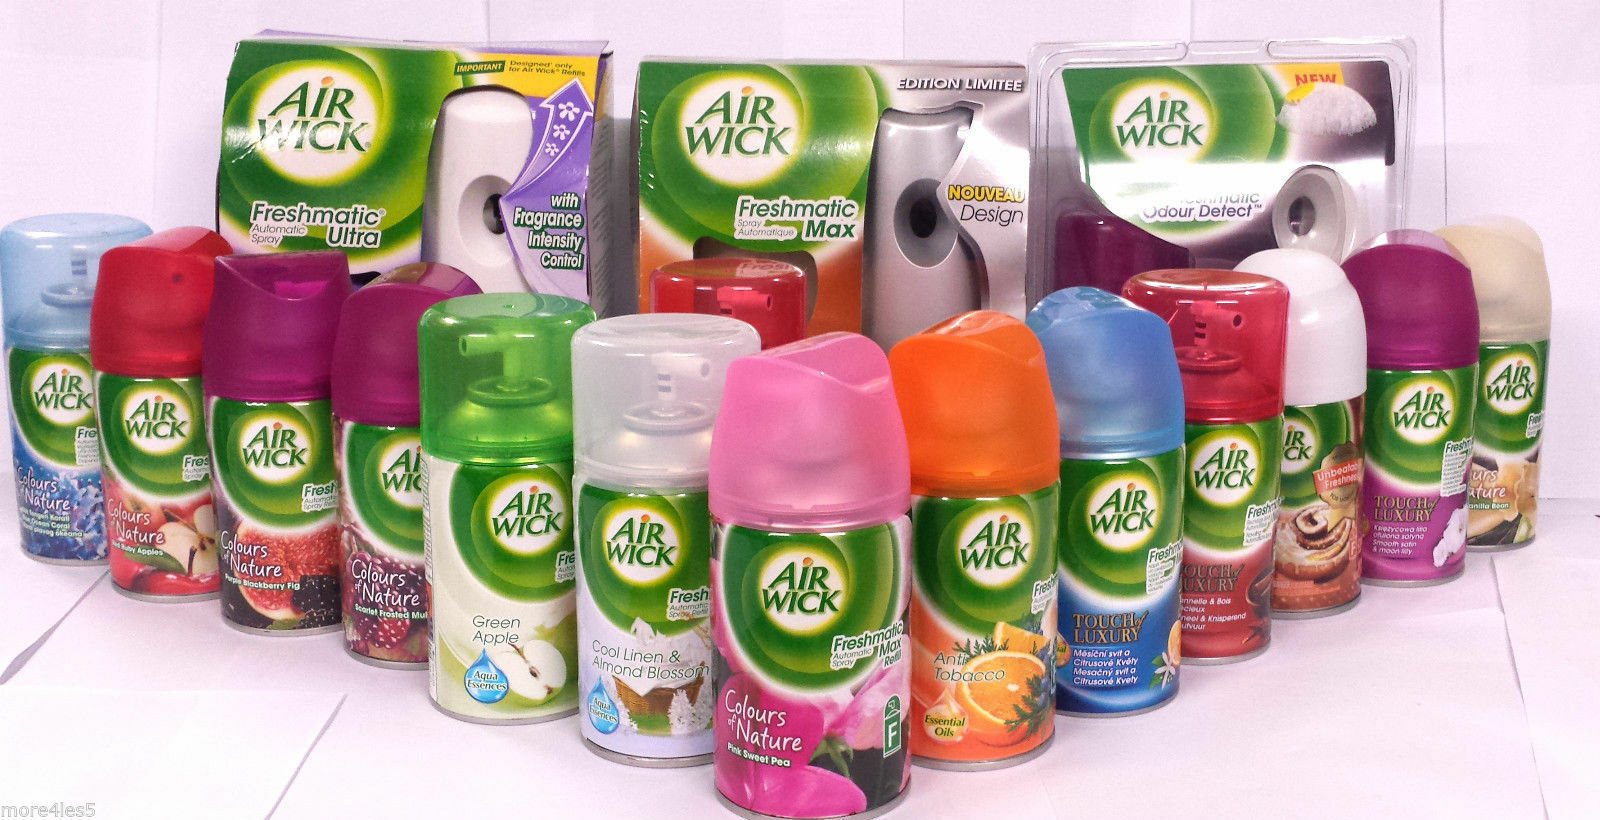 6 Pack Air Wick Freshmatic Ultra Refills Automatic Spray Fra